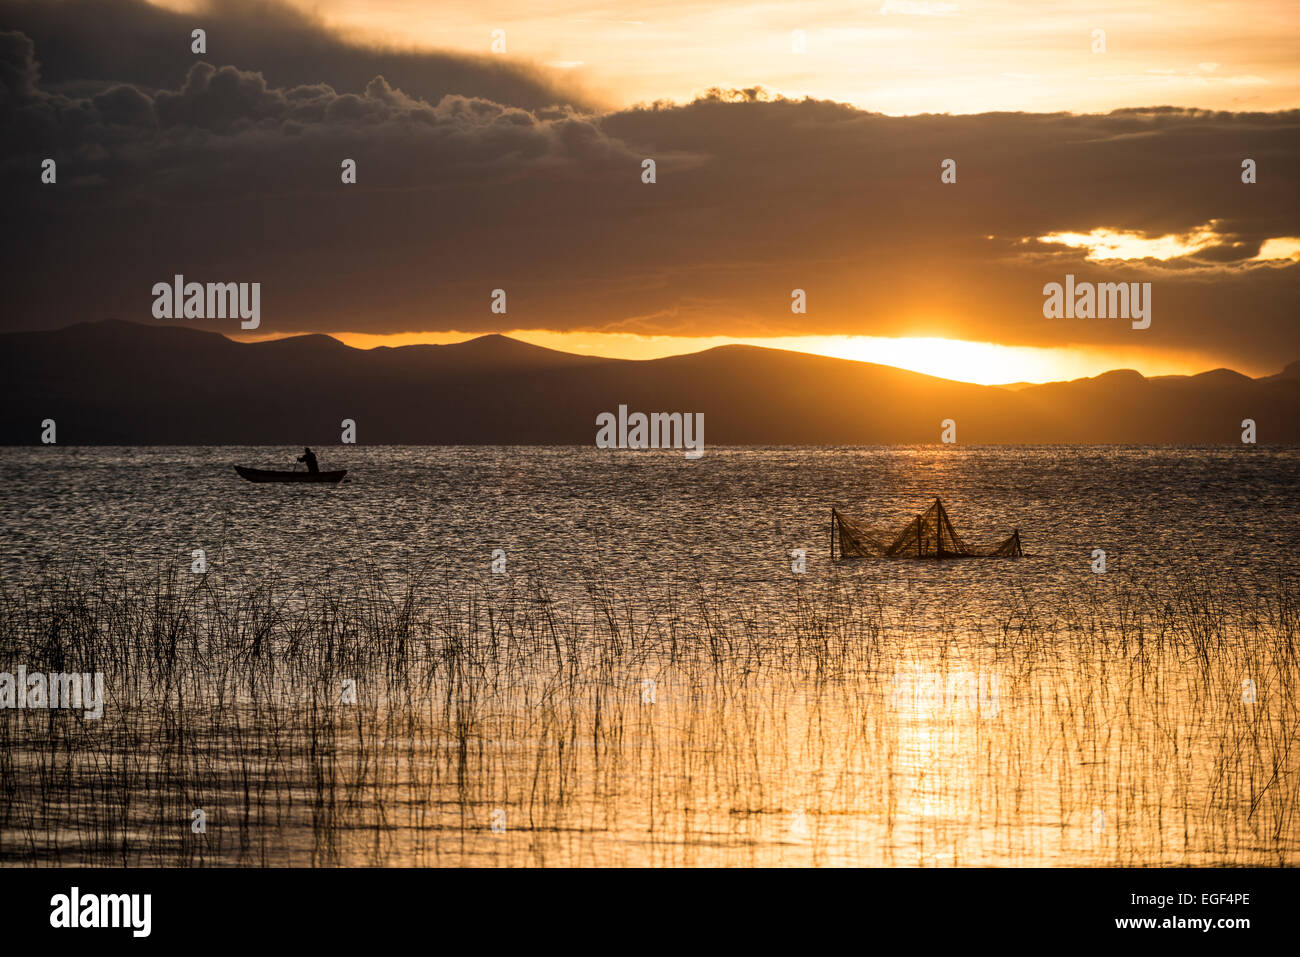 Sunset over Lake Titicaca, Copacabana, Lake Titicaca, Bolivia - Stock Image